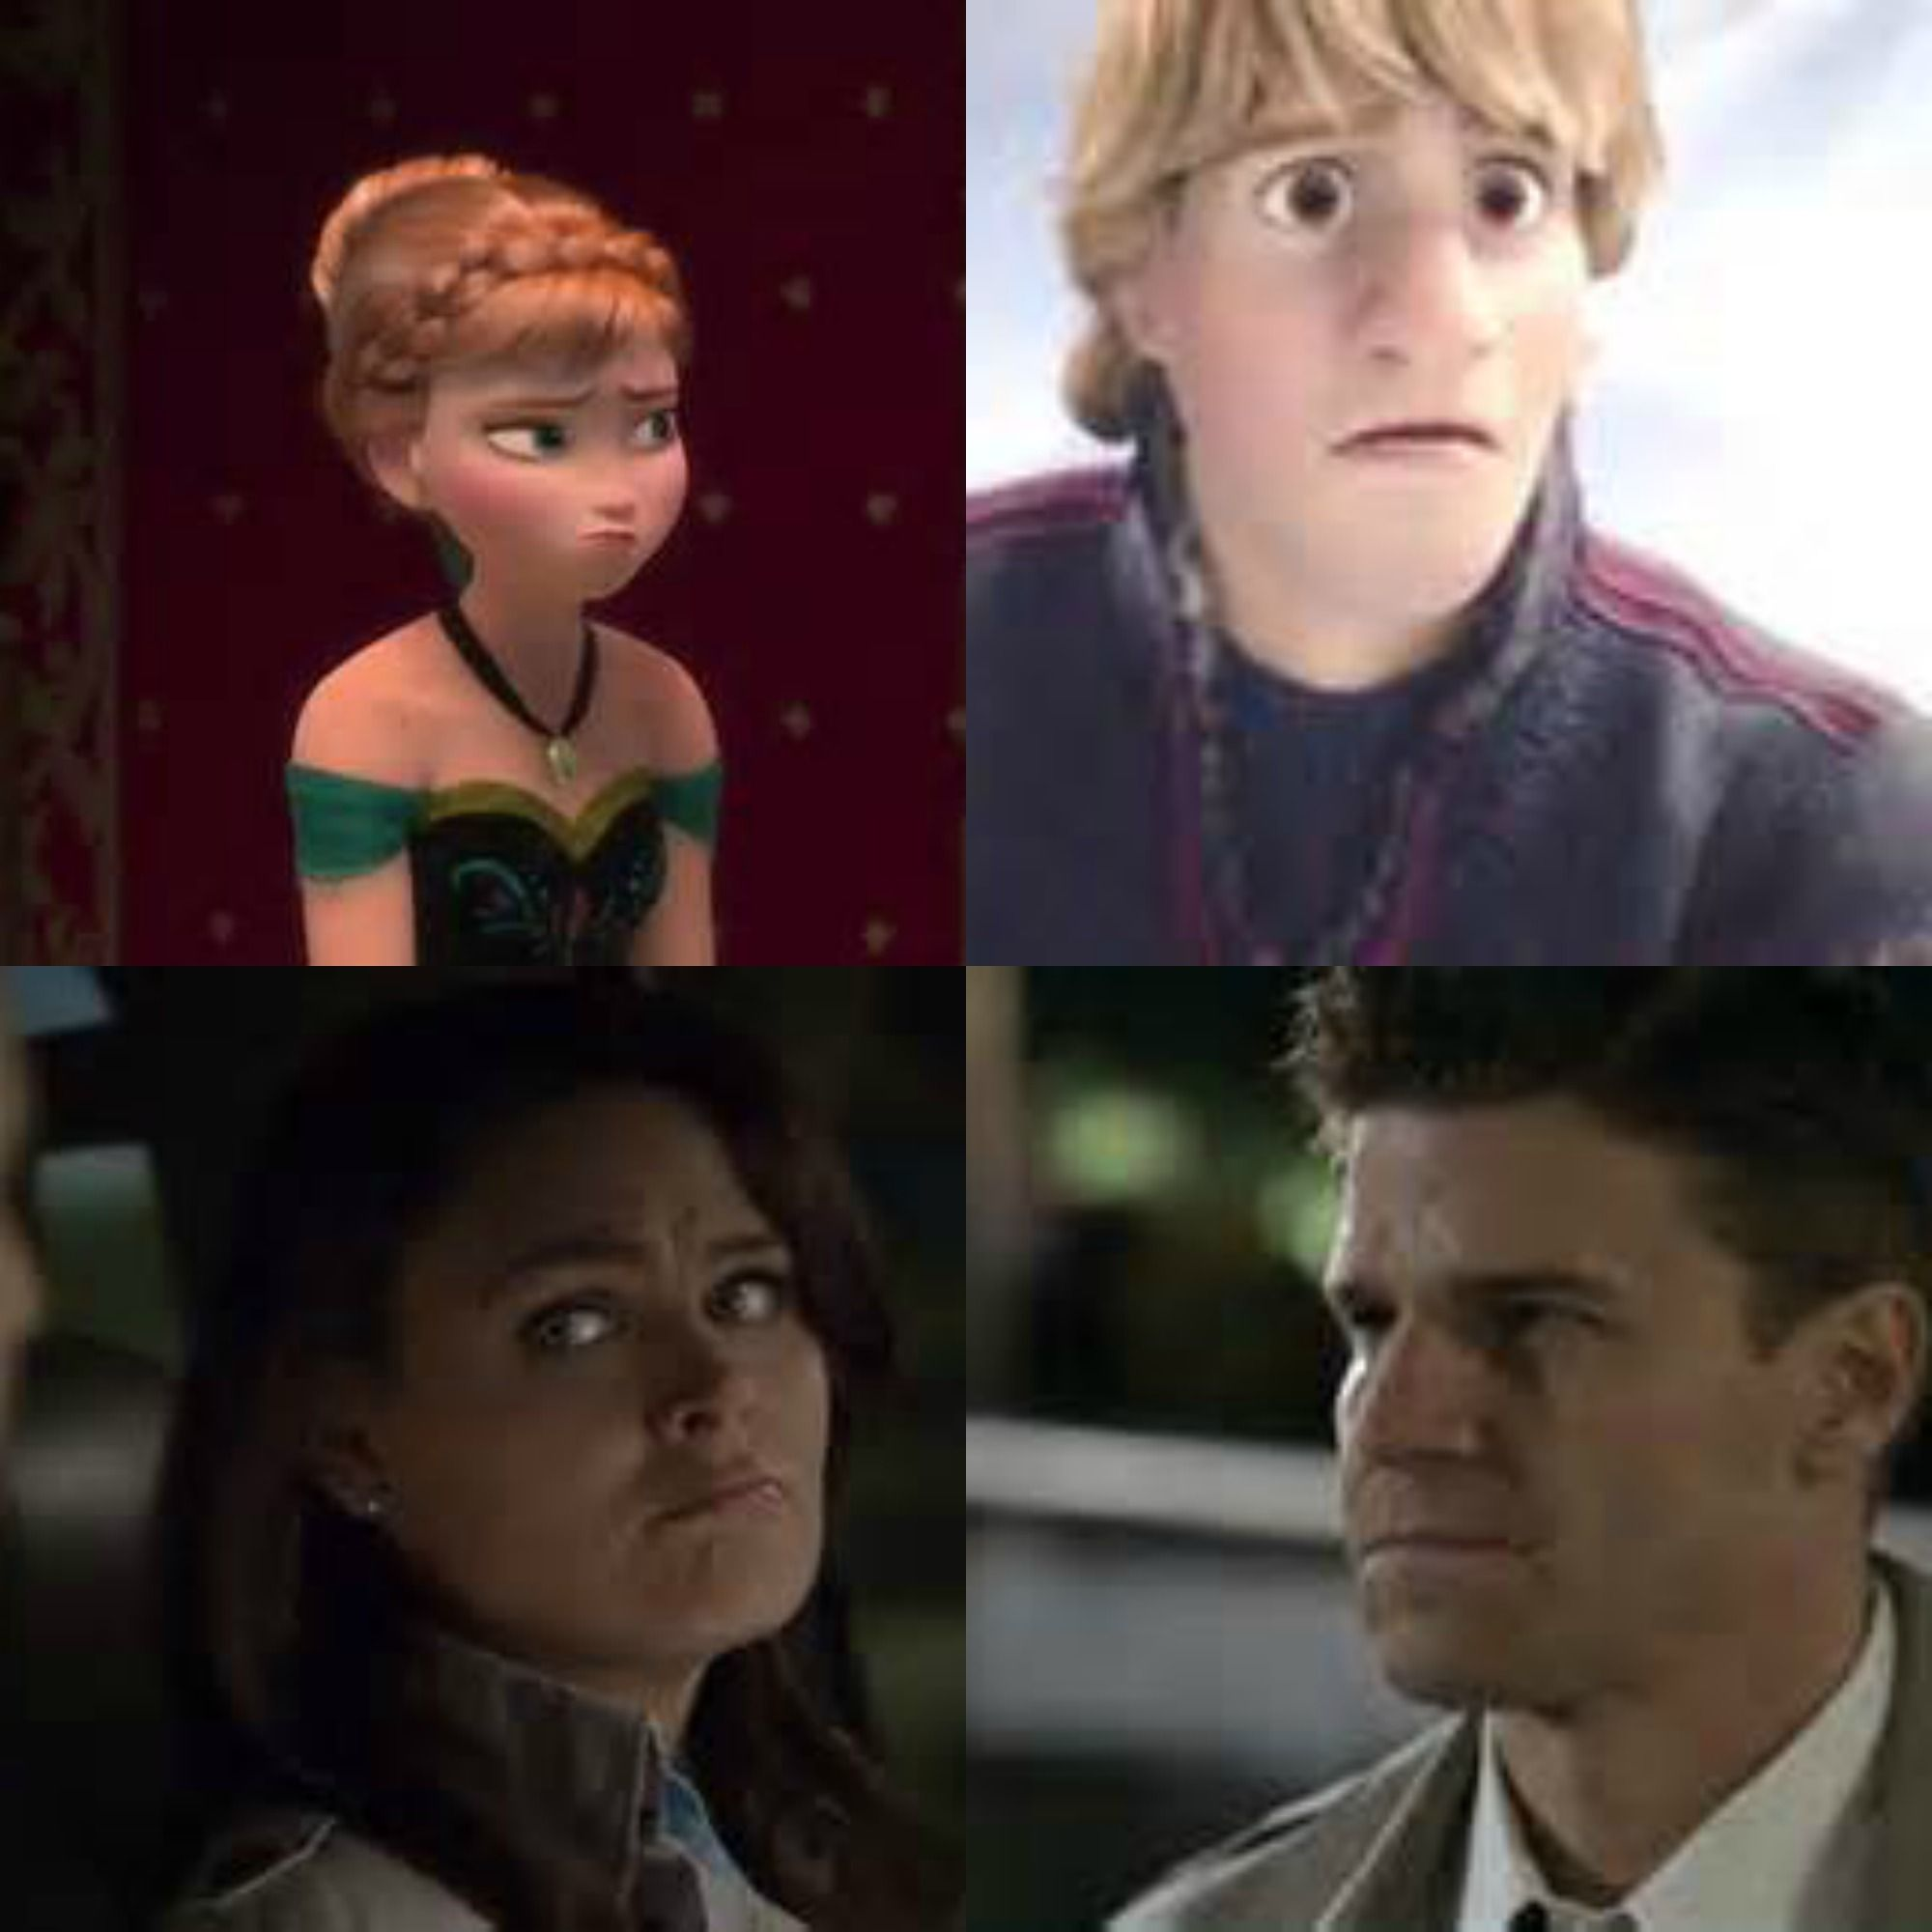 Booth and Bones are Kristoff and Anna.